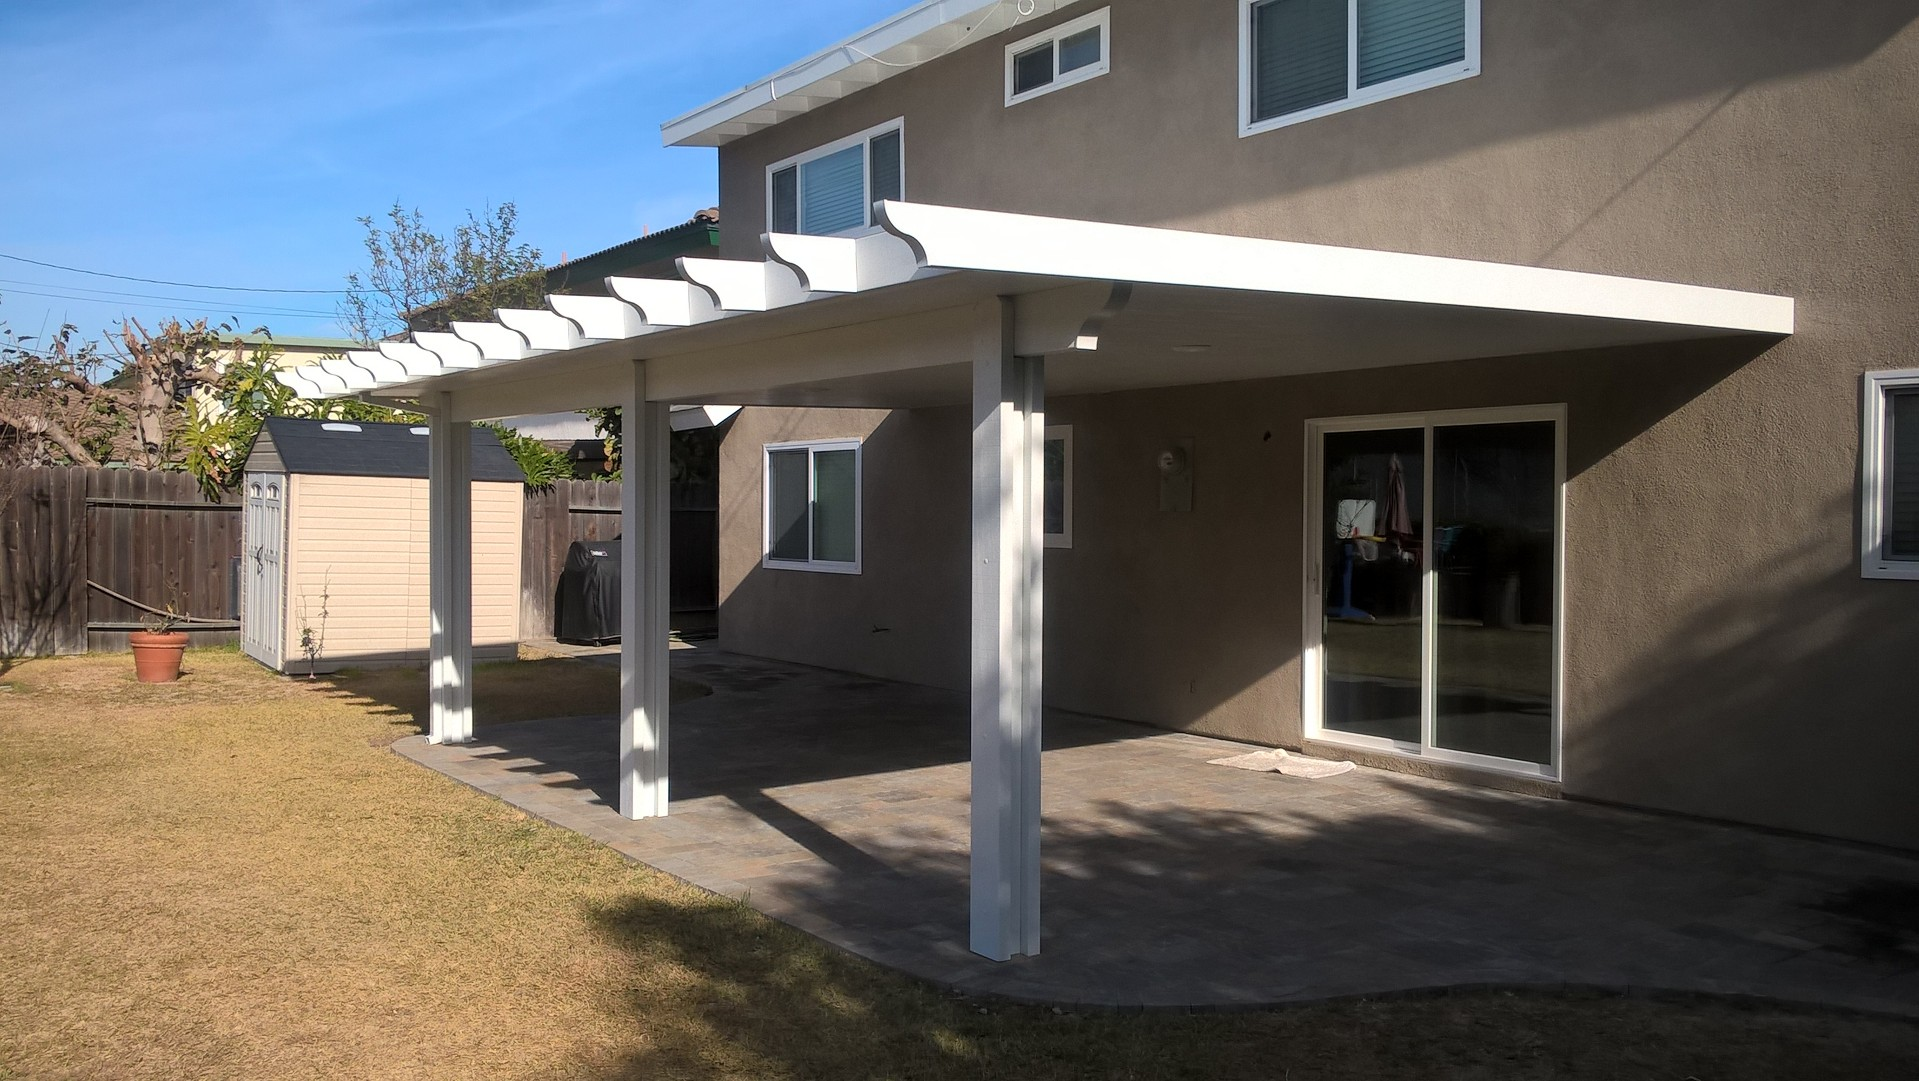 Aluminium patio covers ixtapa construction for Patio cover construction plans